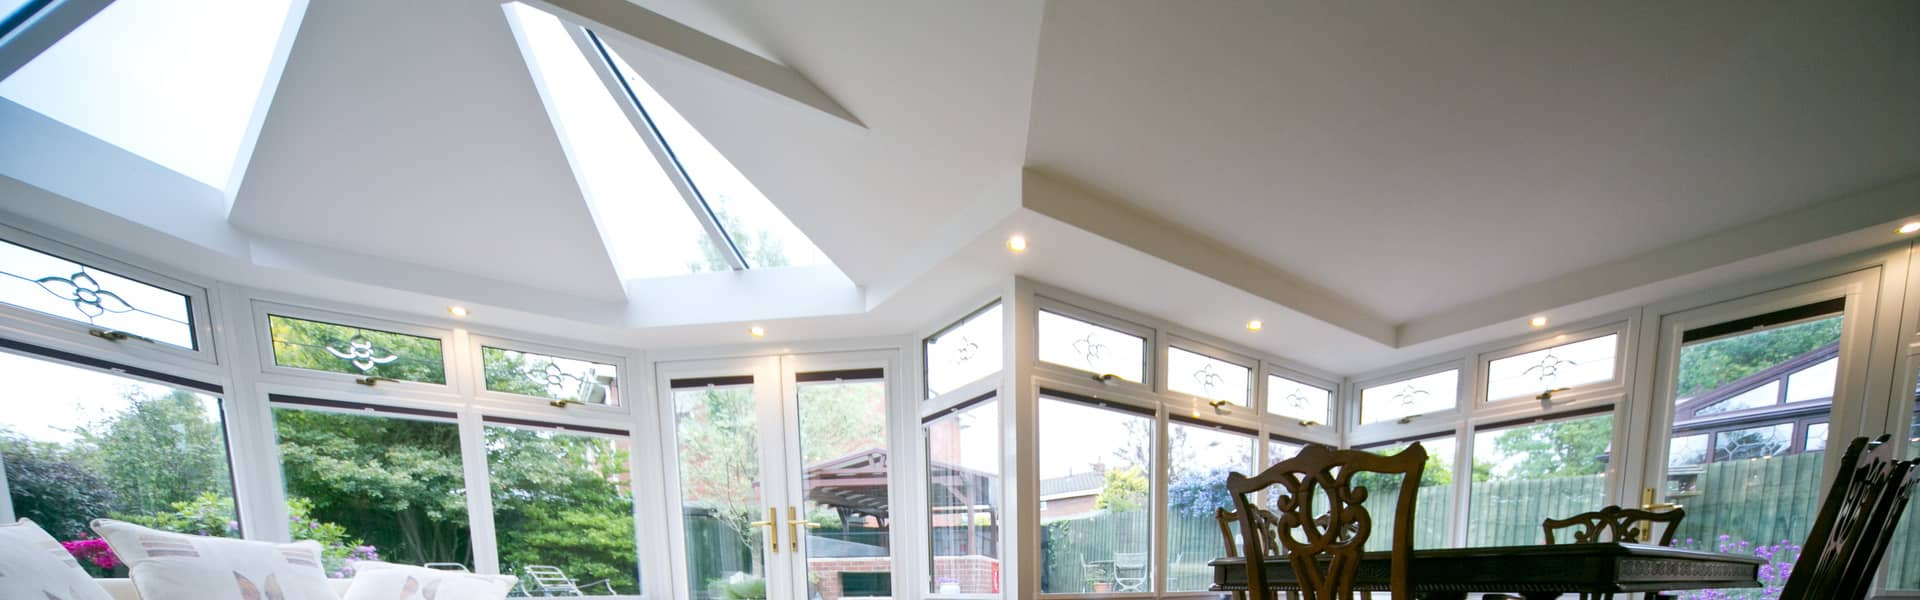 southcote solid roof conservatory